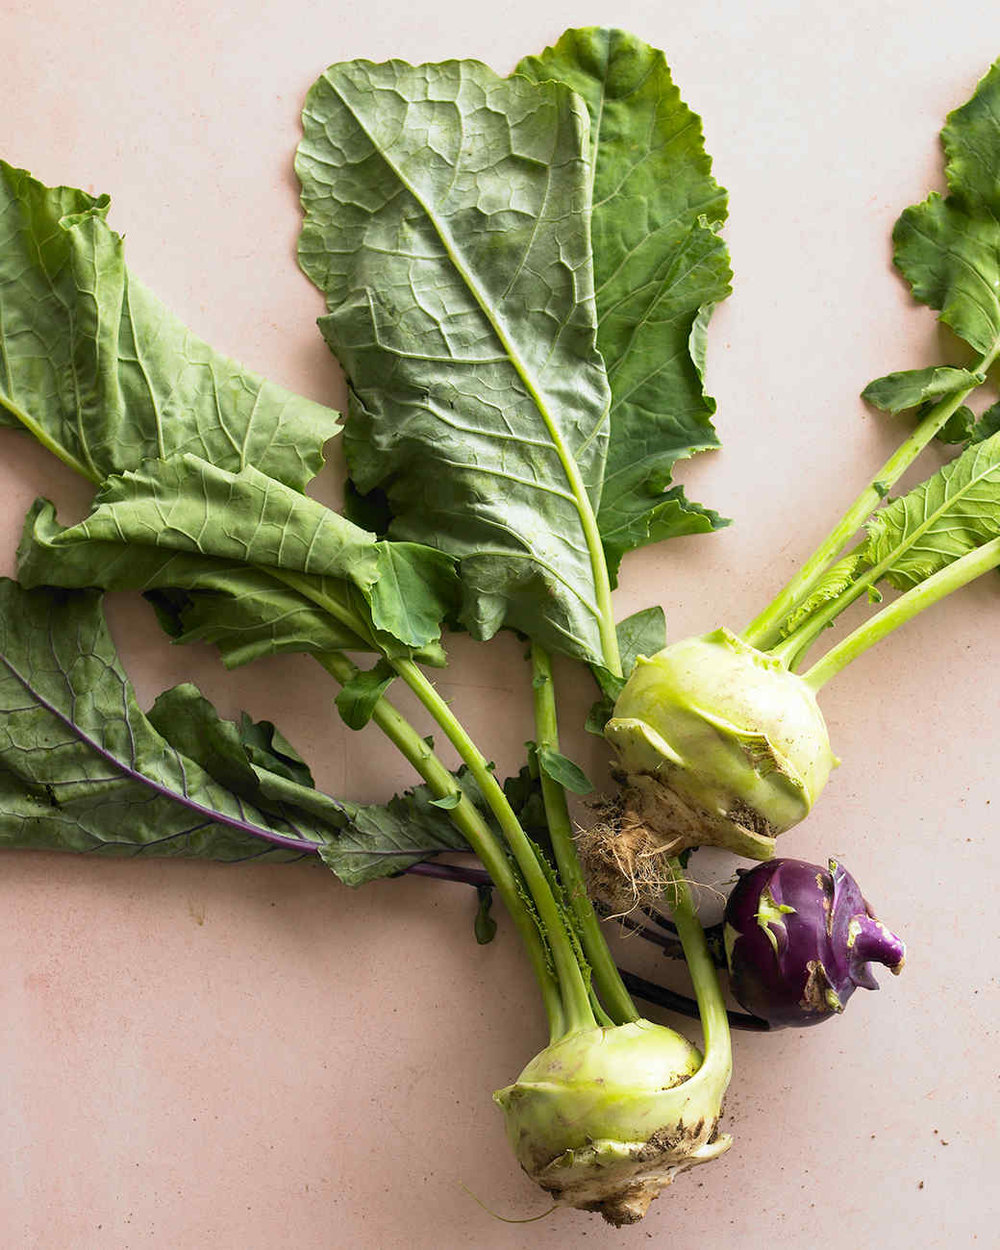 What to do with Kohlrabi